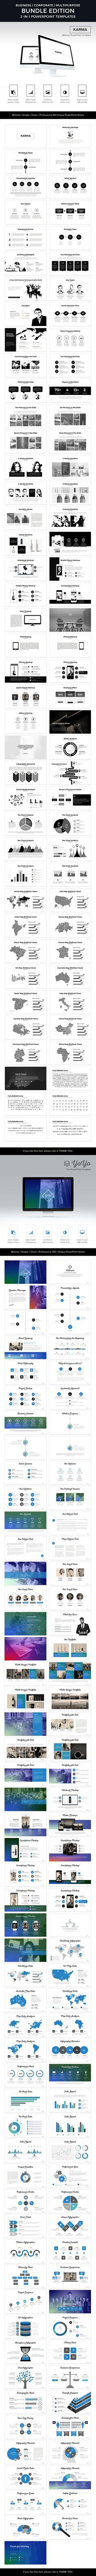 2-in-1 PPT Bundle (PowerPoint Templates)